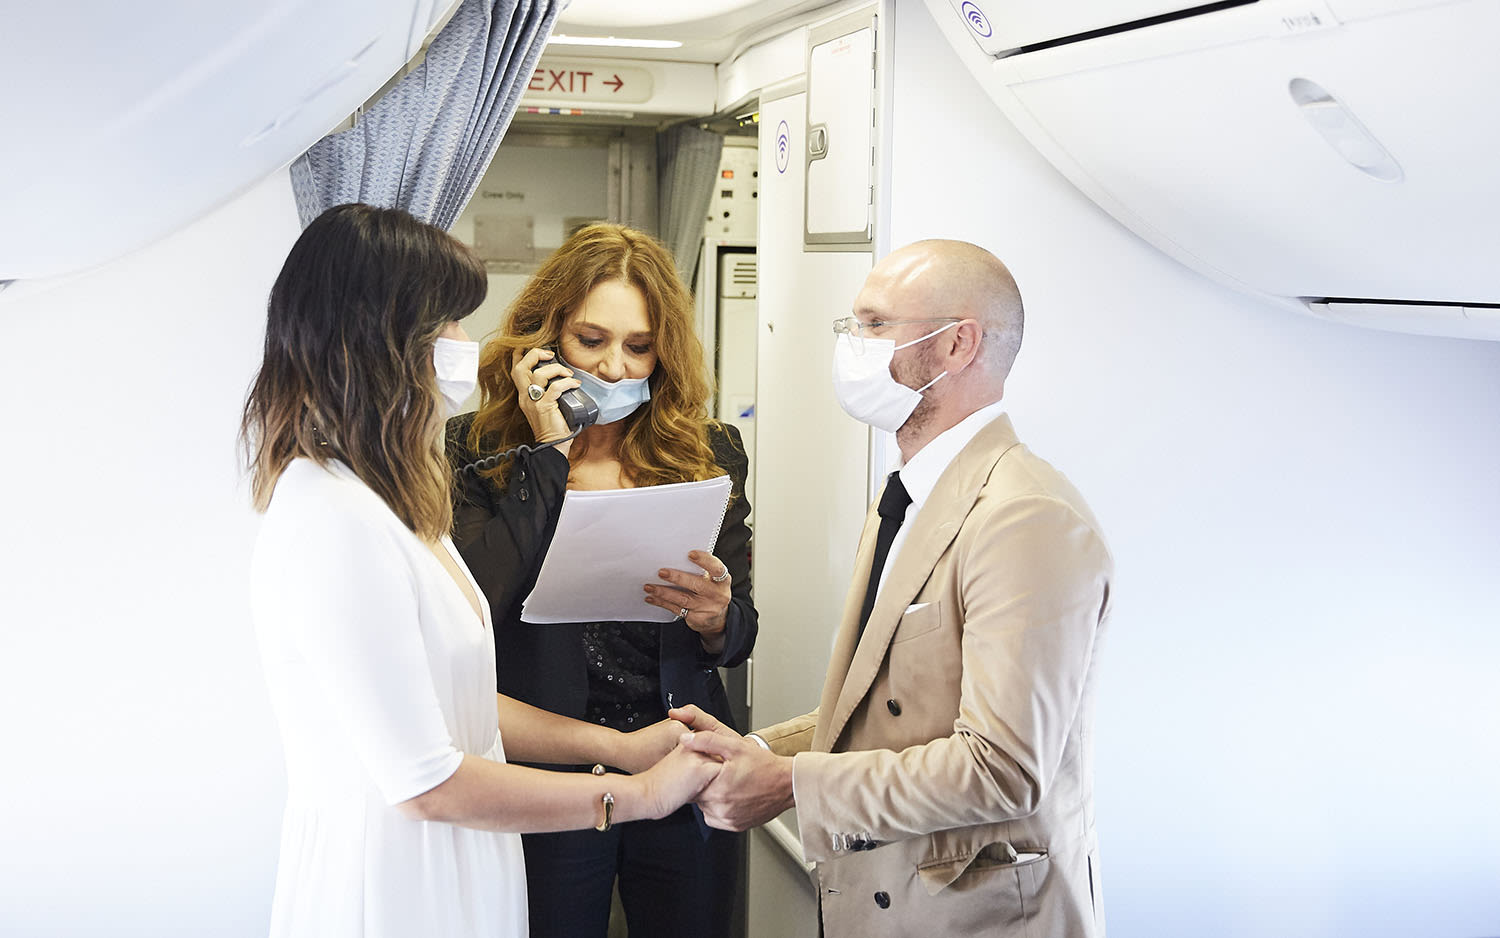 Elaine and Luke Serdar get married on a Virgin Australia flight